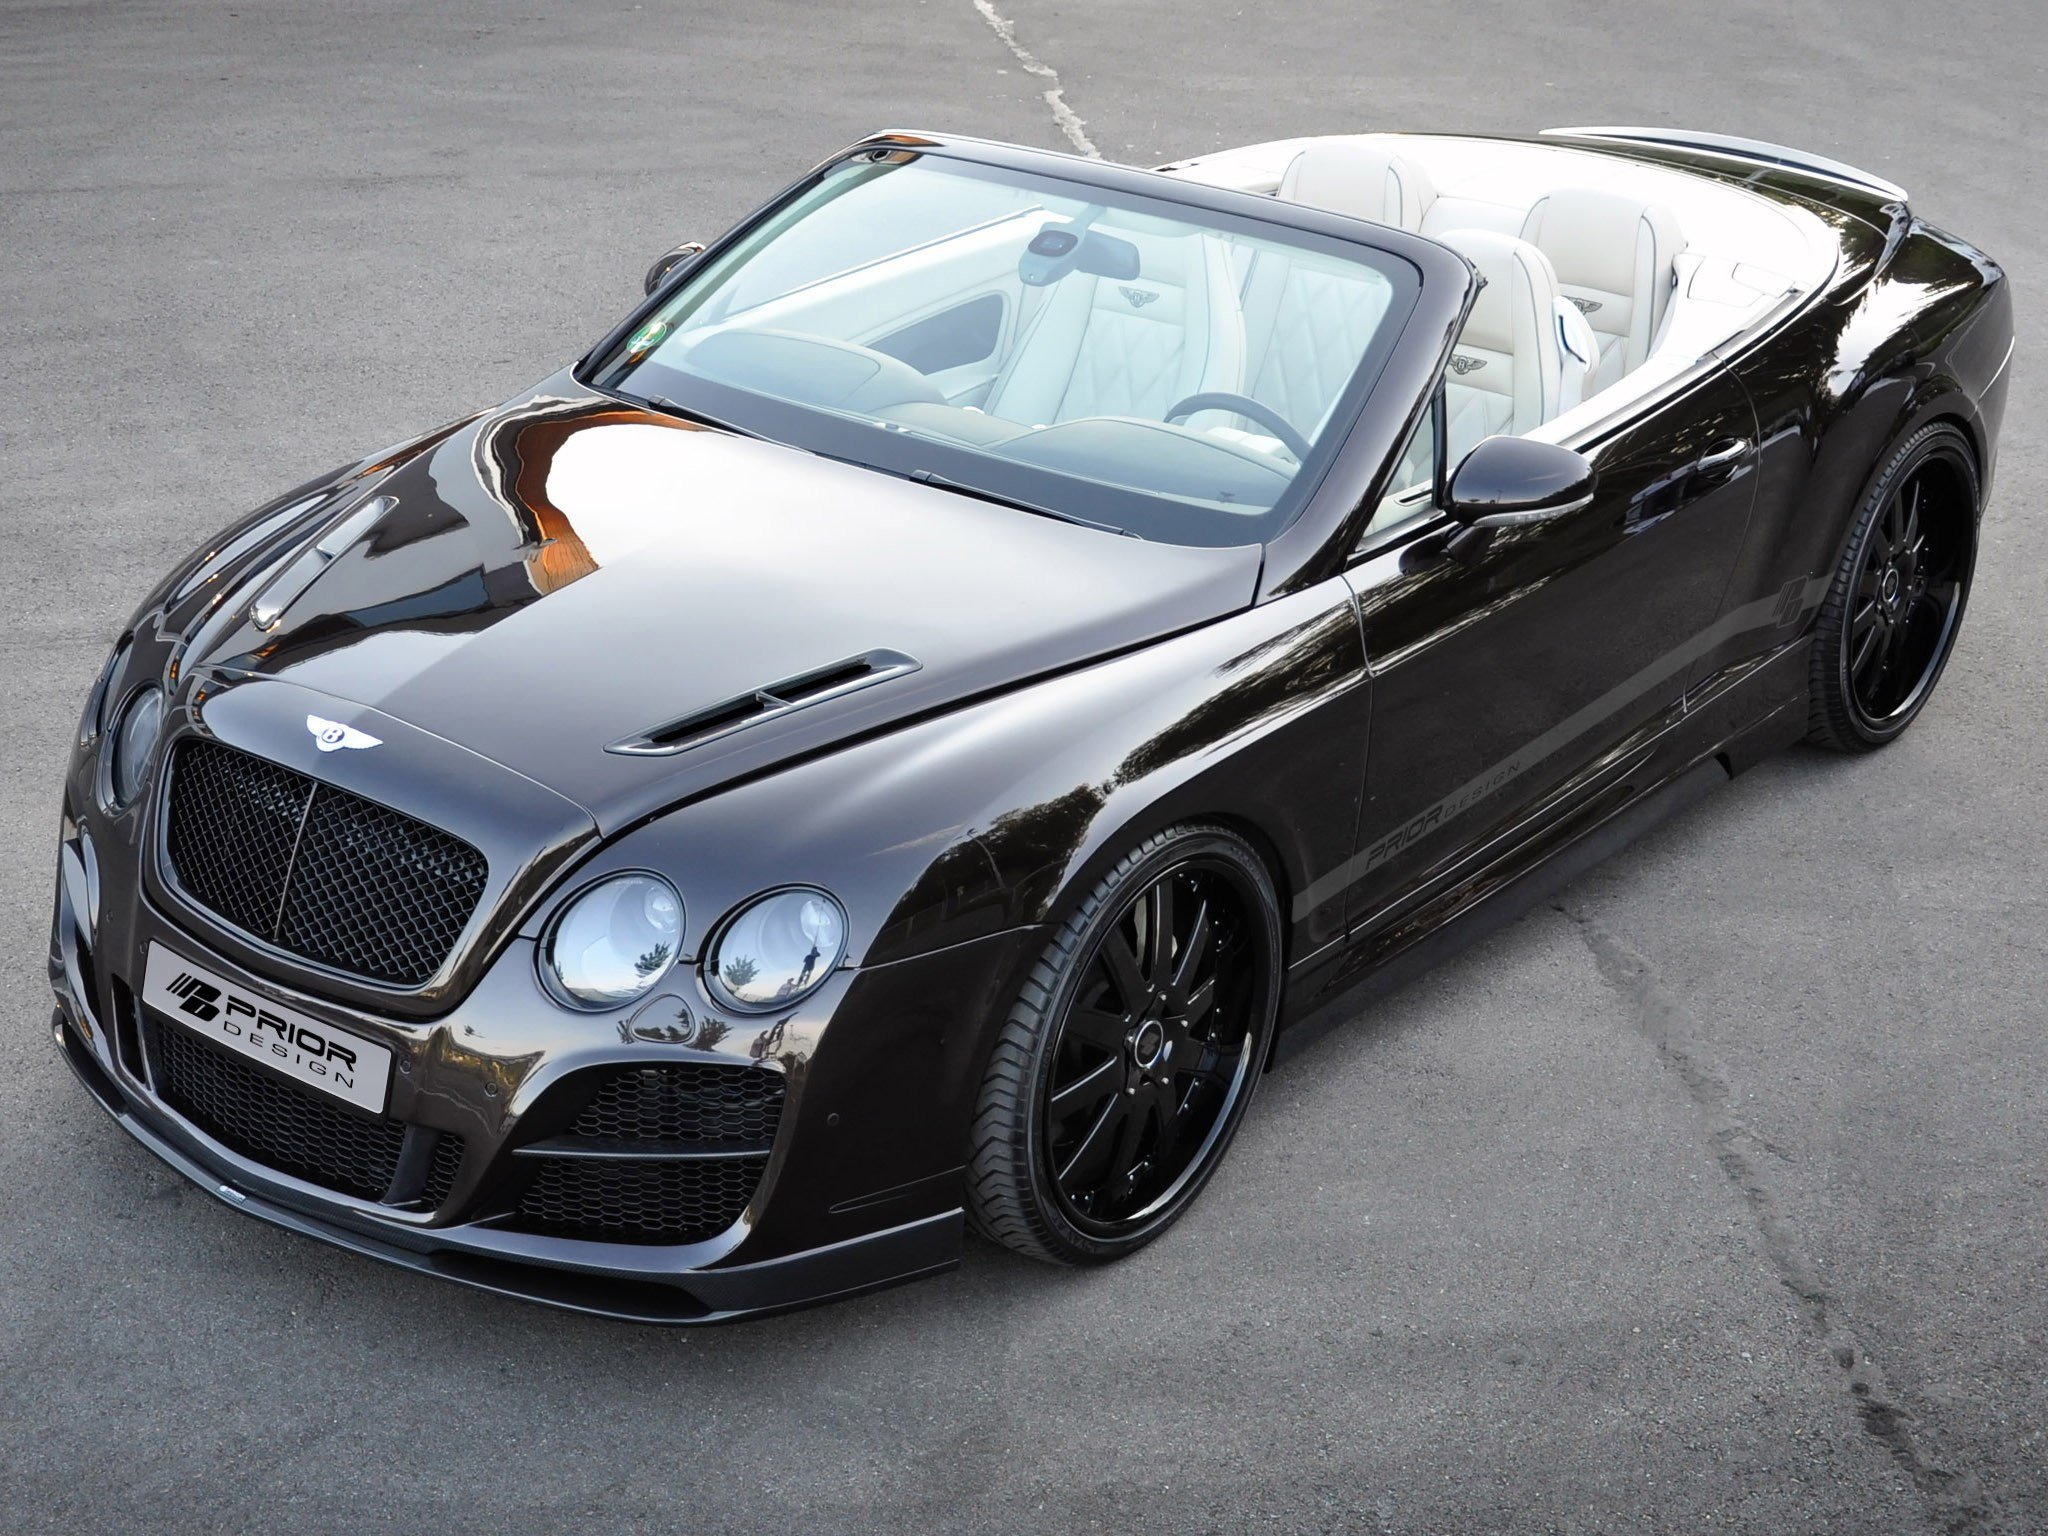 Latest Bentley Hd Desktop Wallpaper Car Hd Wallpapers Free Free Download